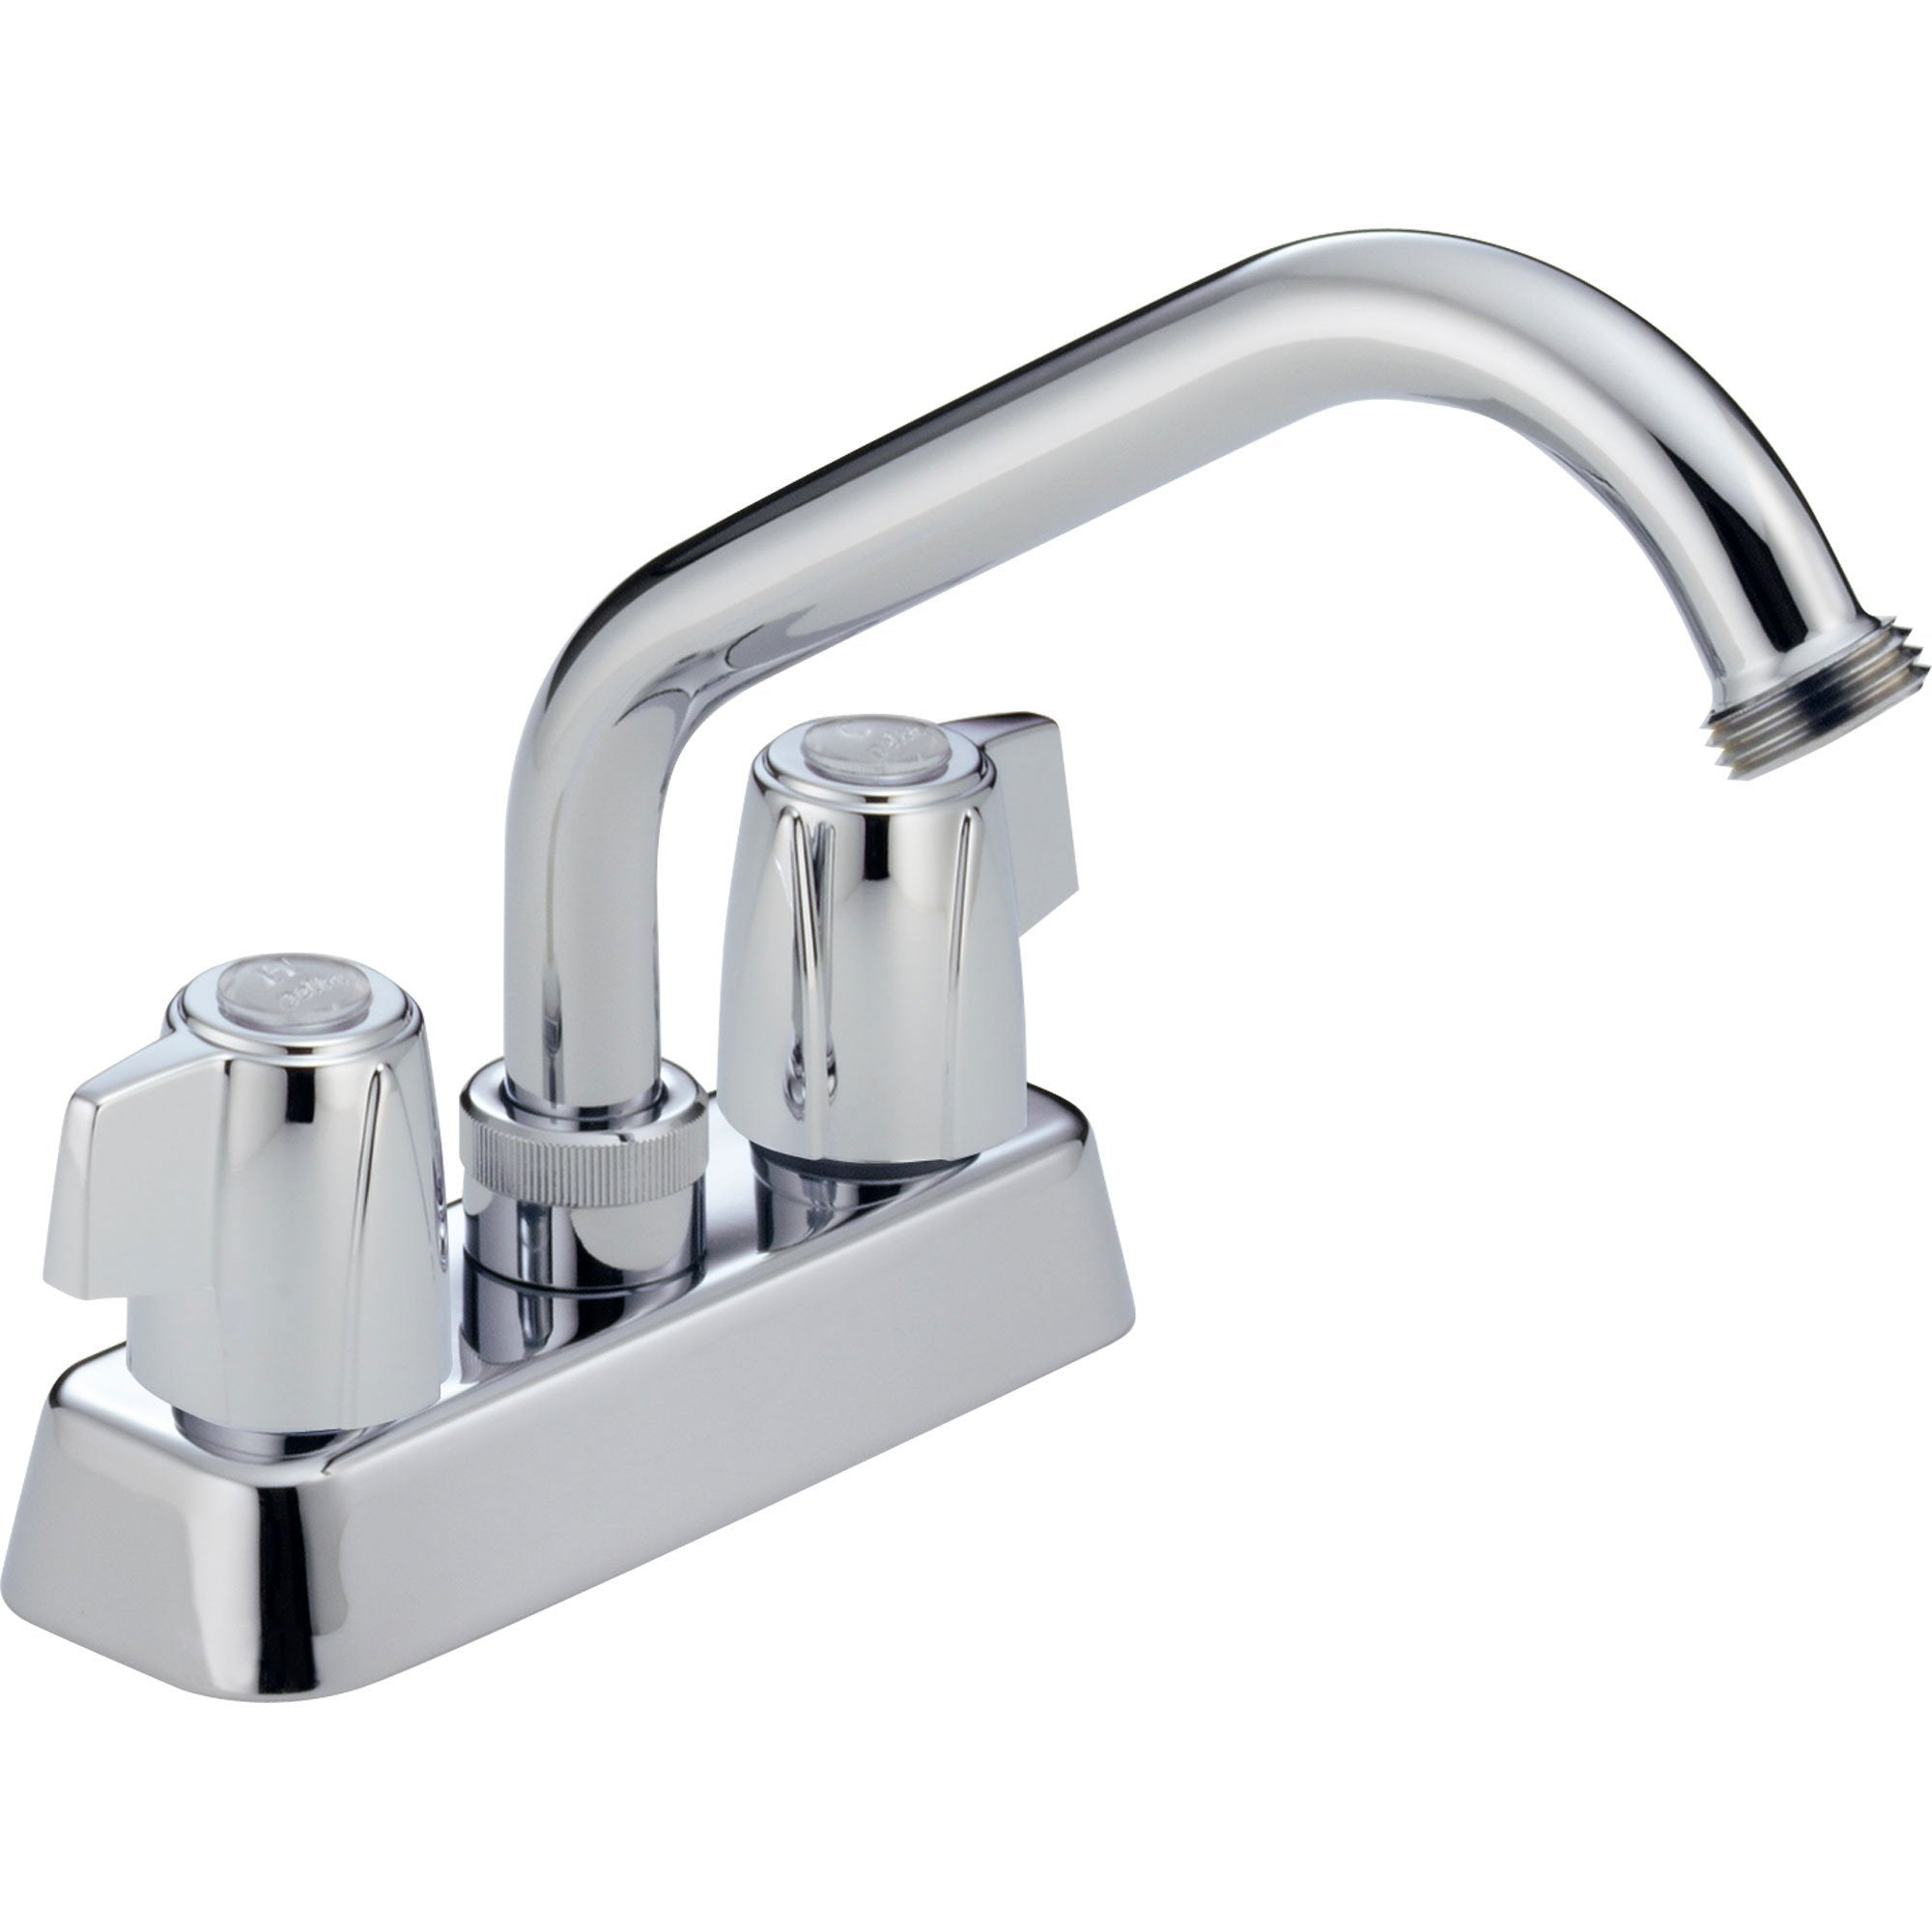 Delta Chrome Finish Two Handle Centerset Laundry Sink Faucet572902